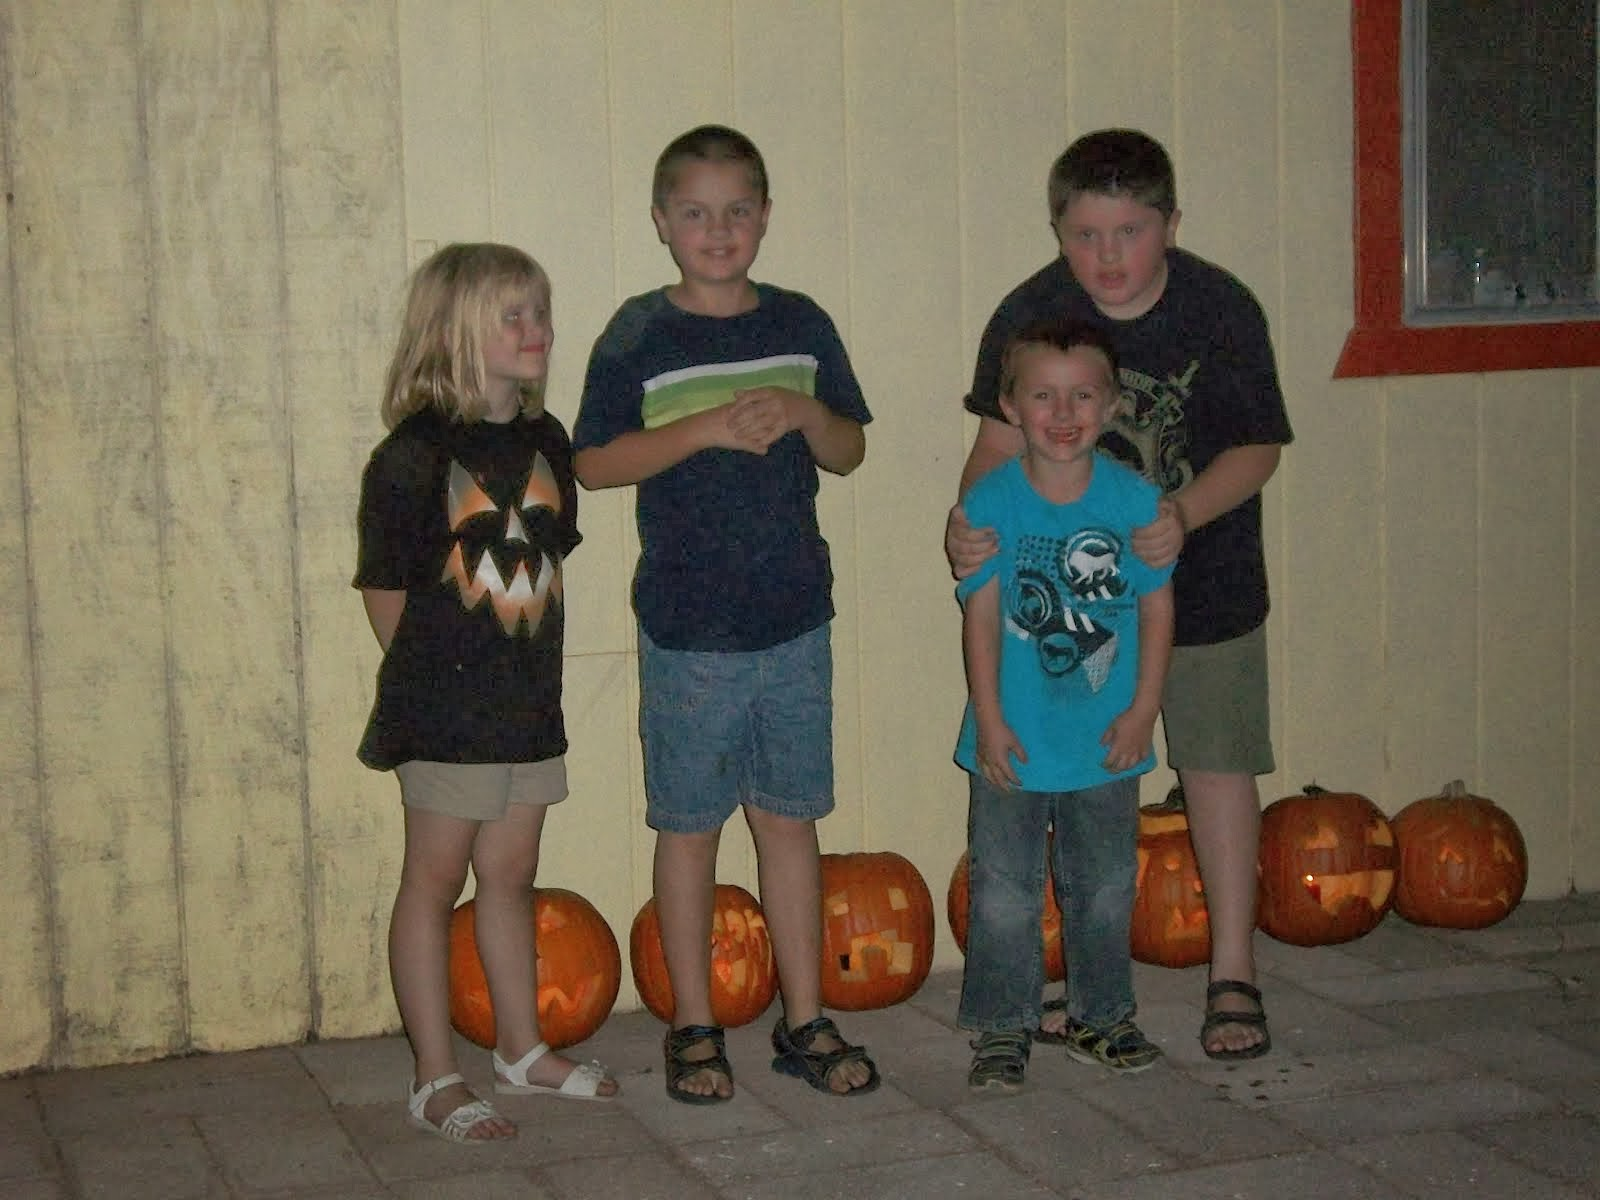 Grands with Jack-o-lanterns